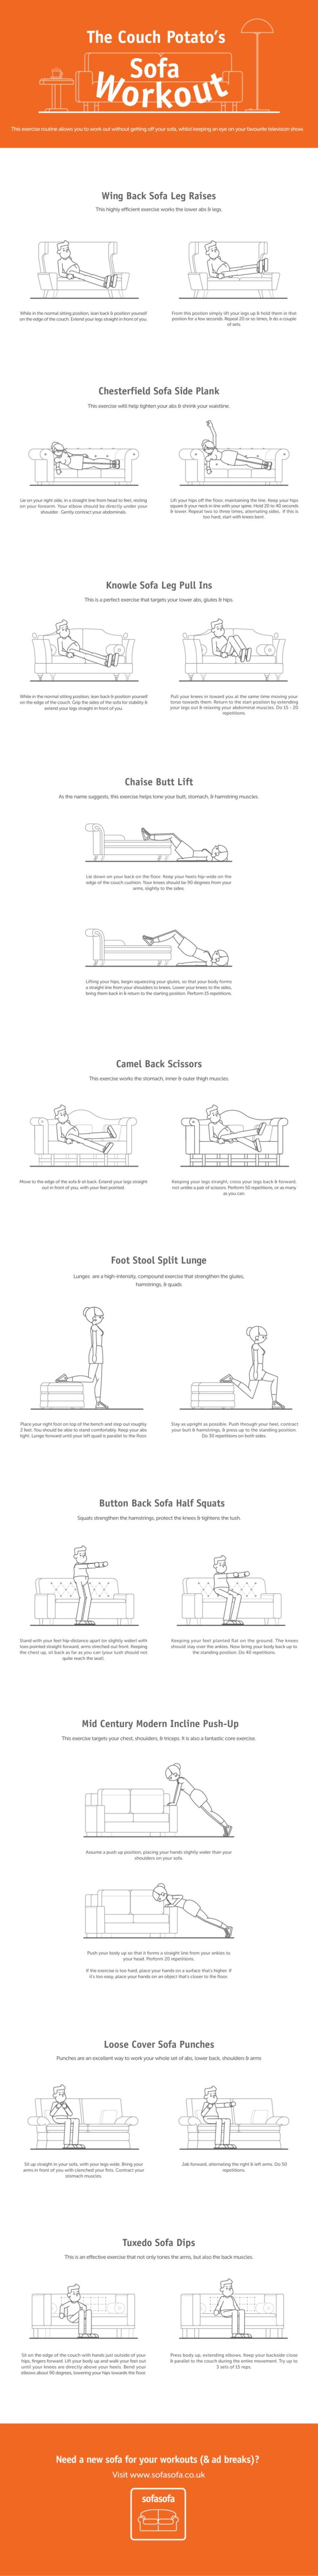 Sofa-Workout-Infographic (2)